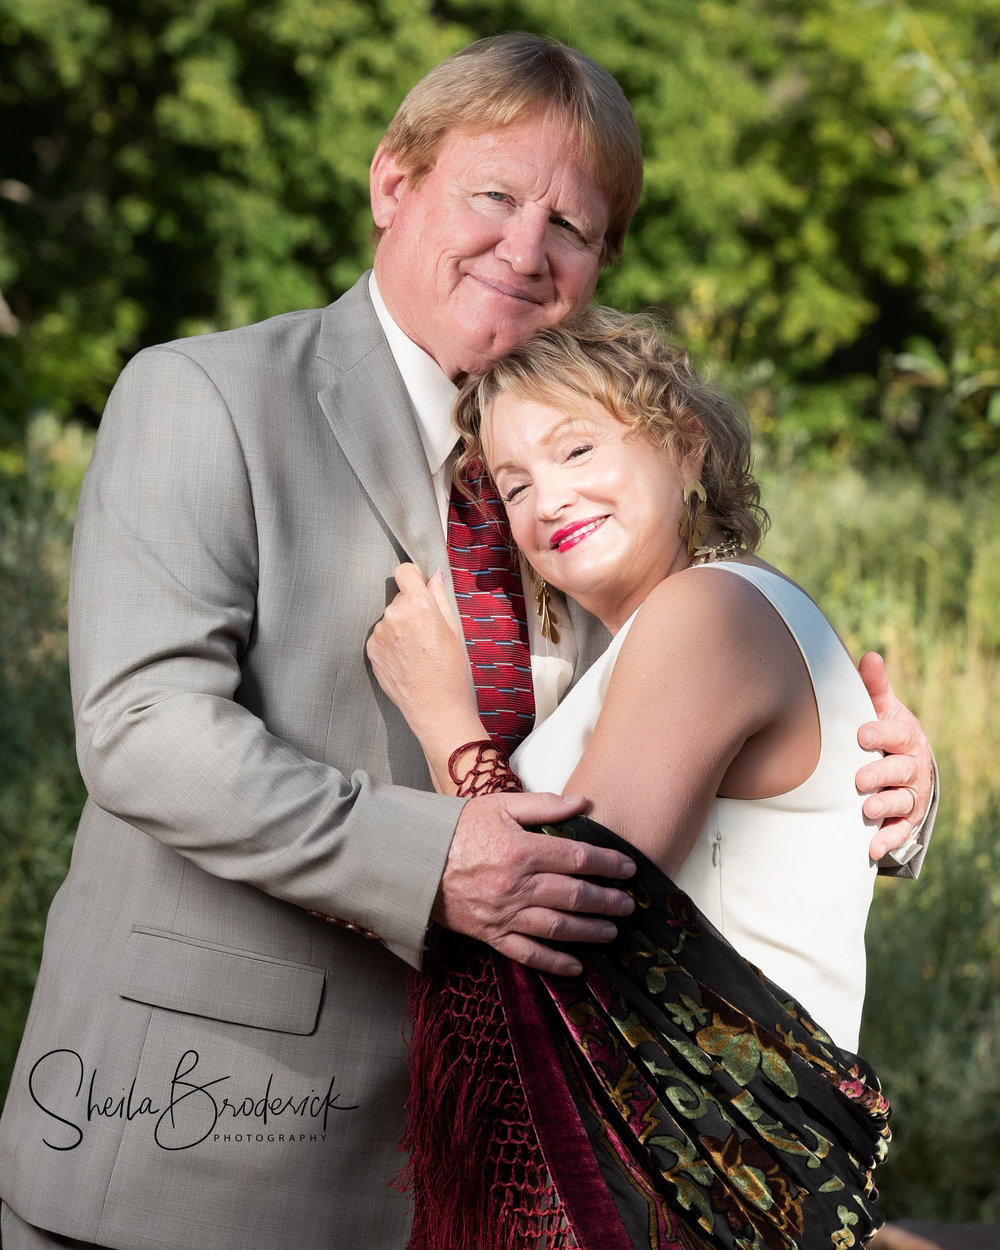 Family_Portraits_Sheila_Broderick_photography_7.jpg